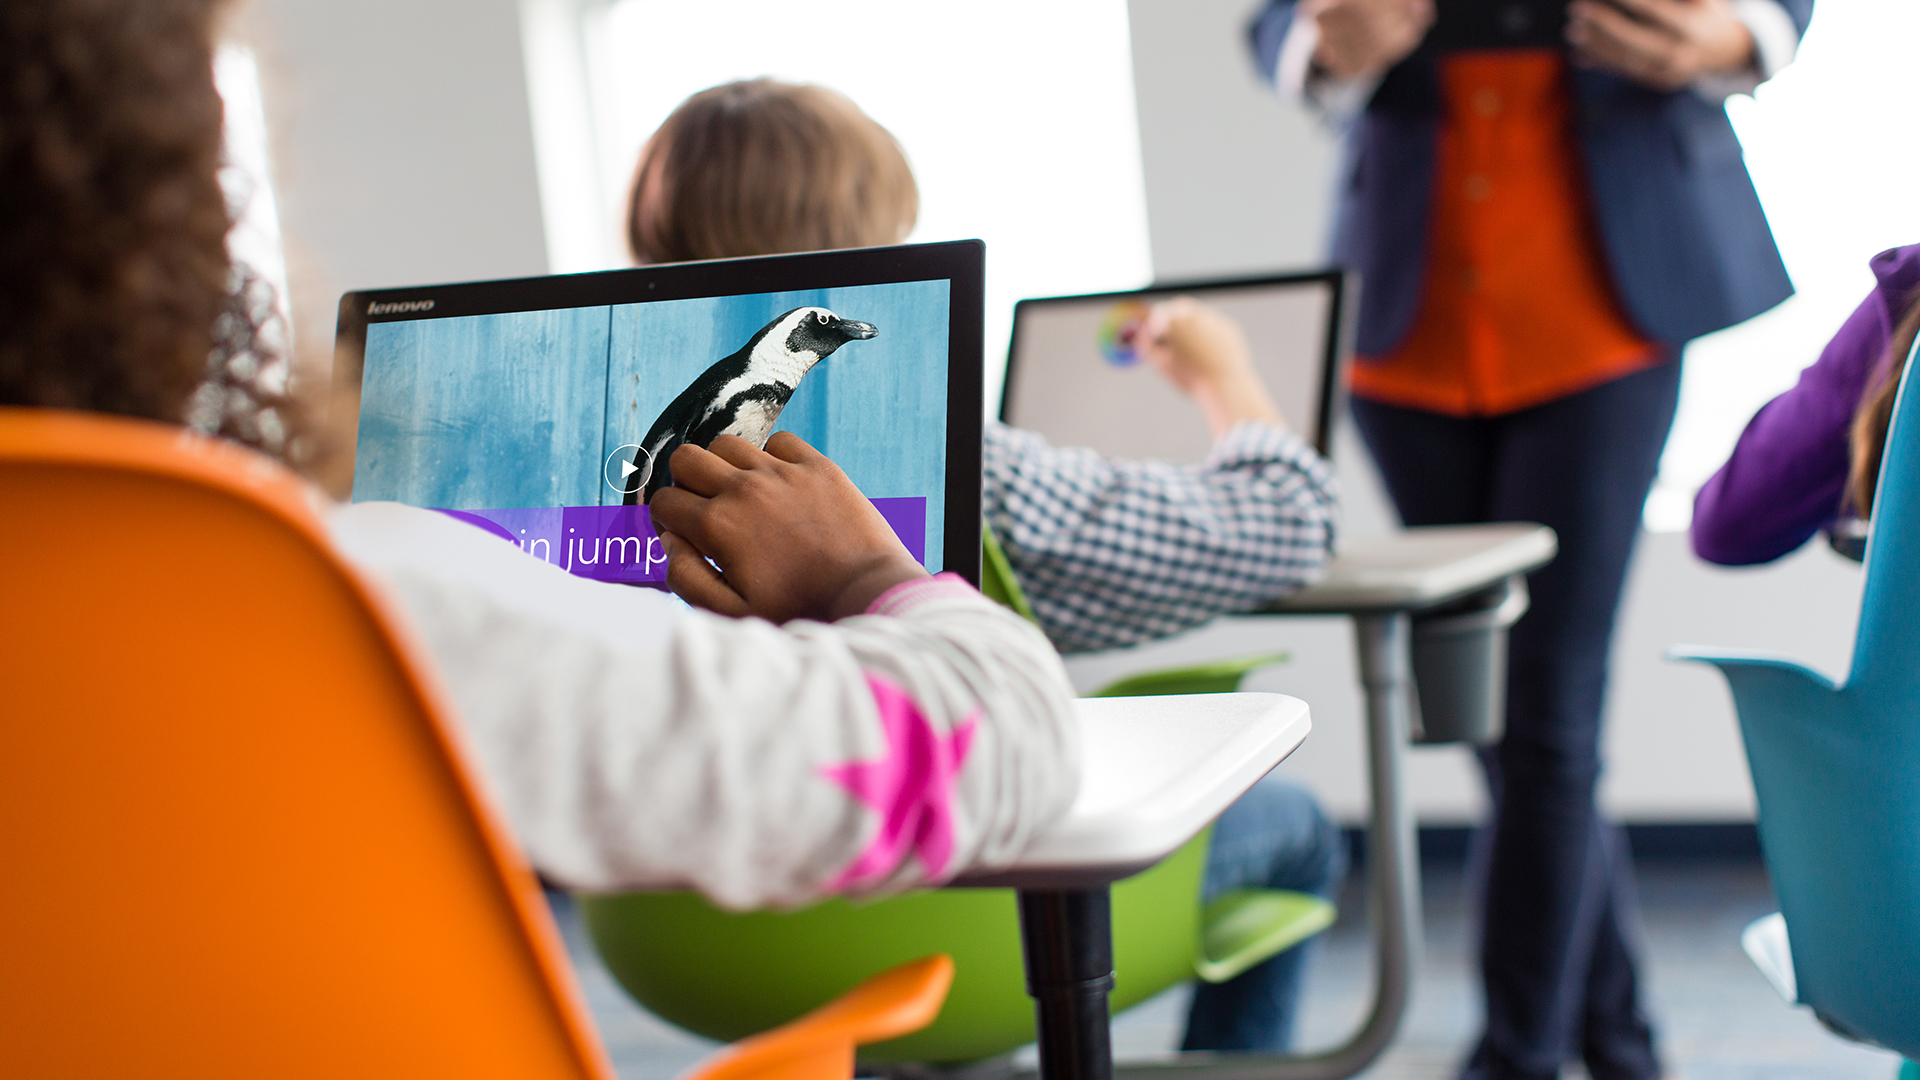 A child using a microsoft interface in a classroom environment to get creative.